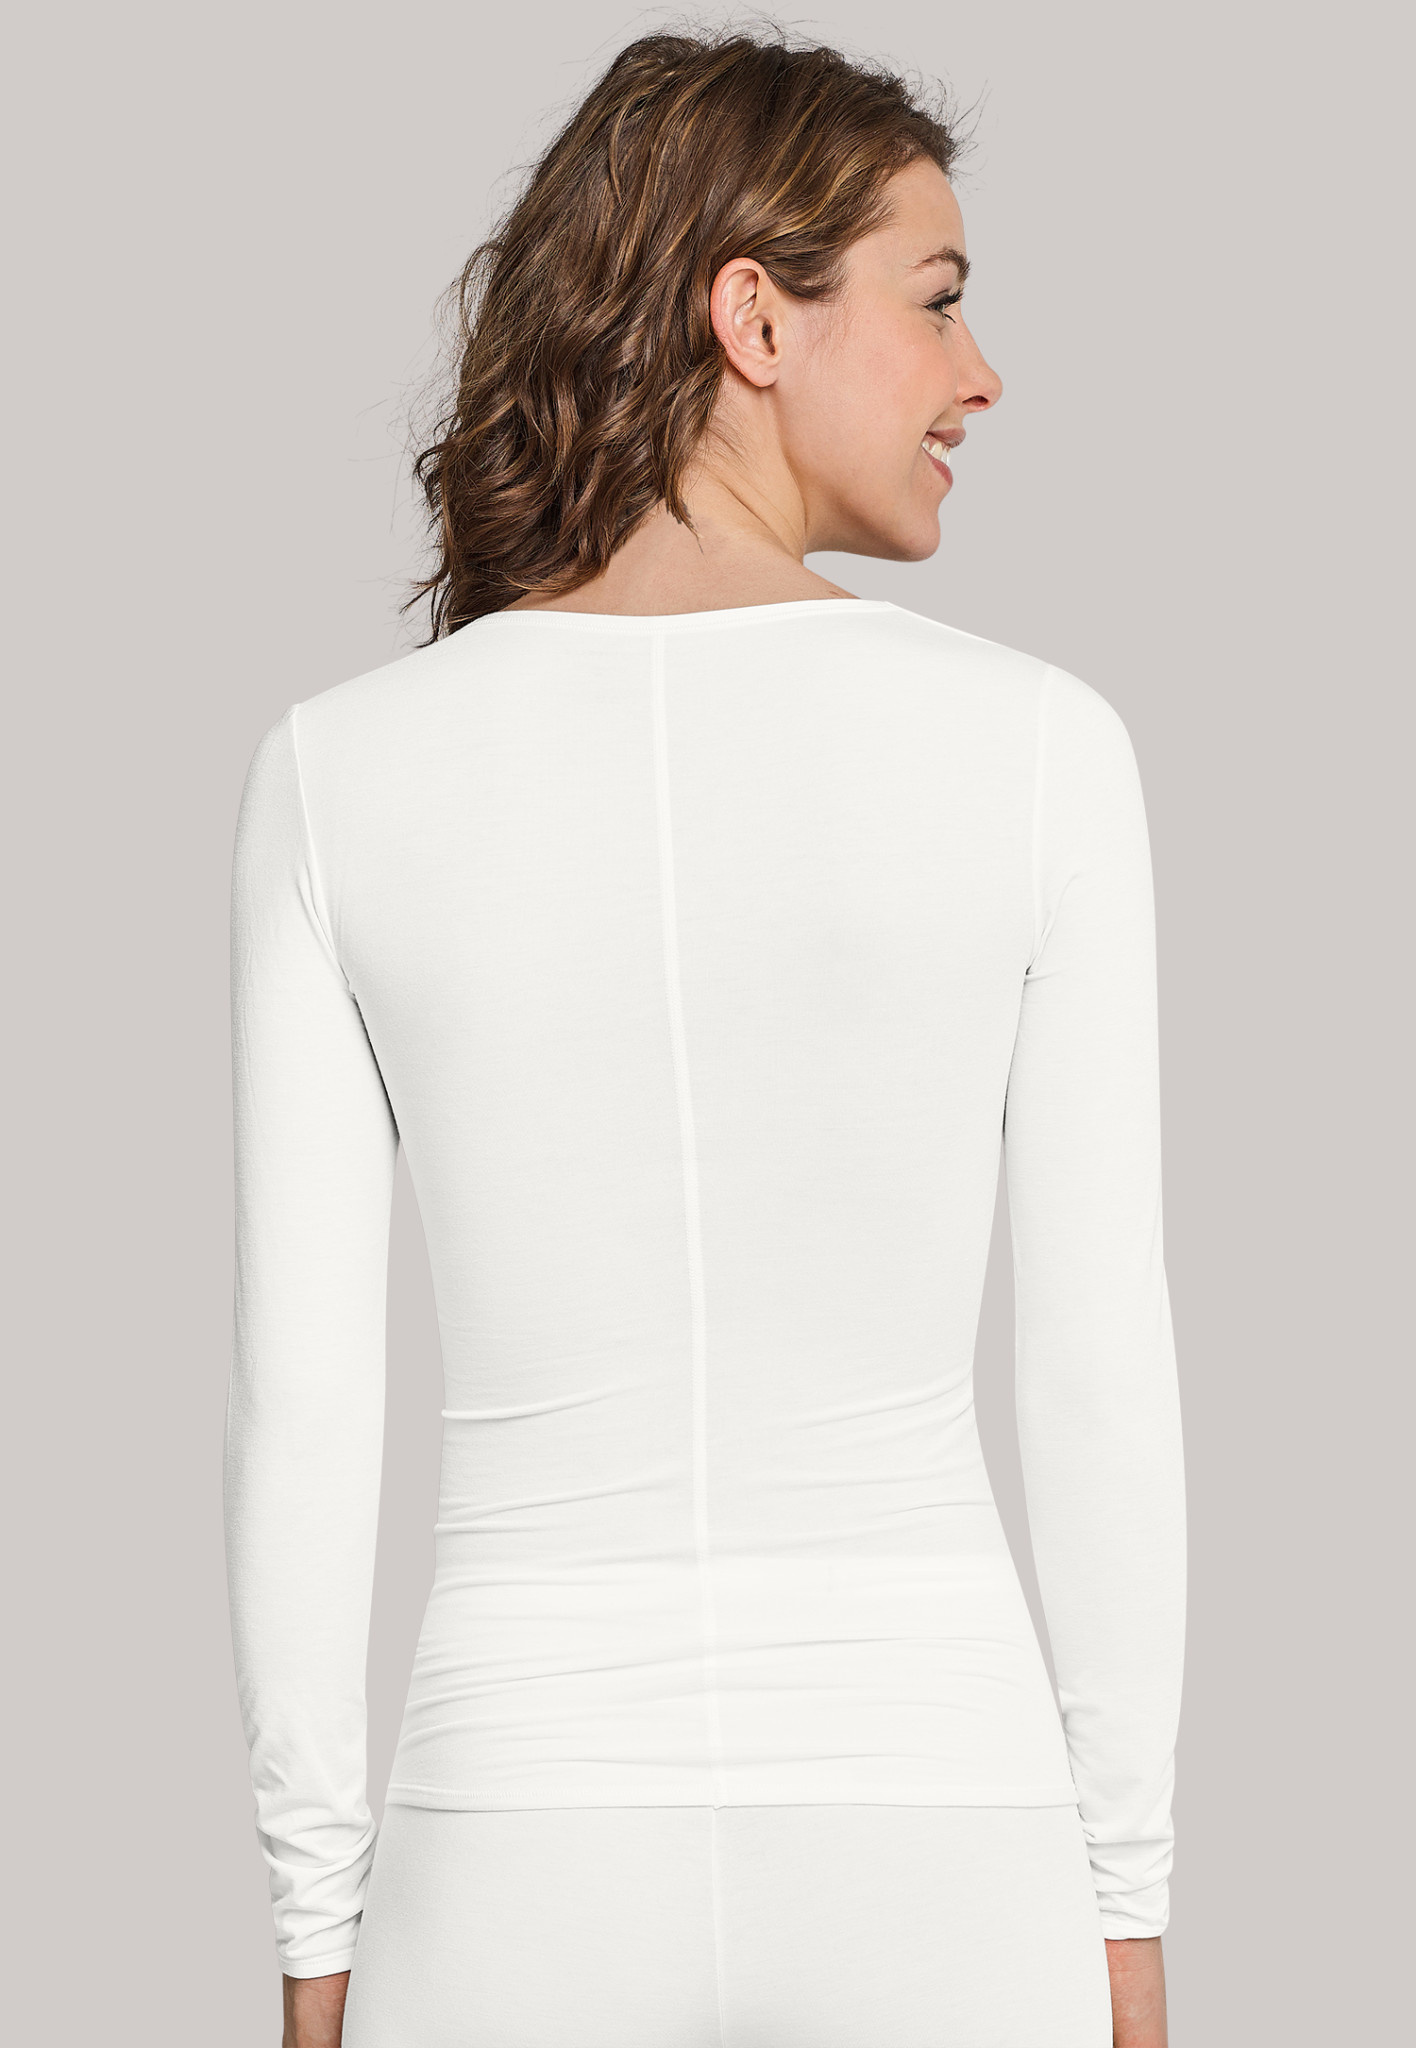 T-shirt Personal Fit lange mouw 155414 - offwhite-2